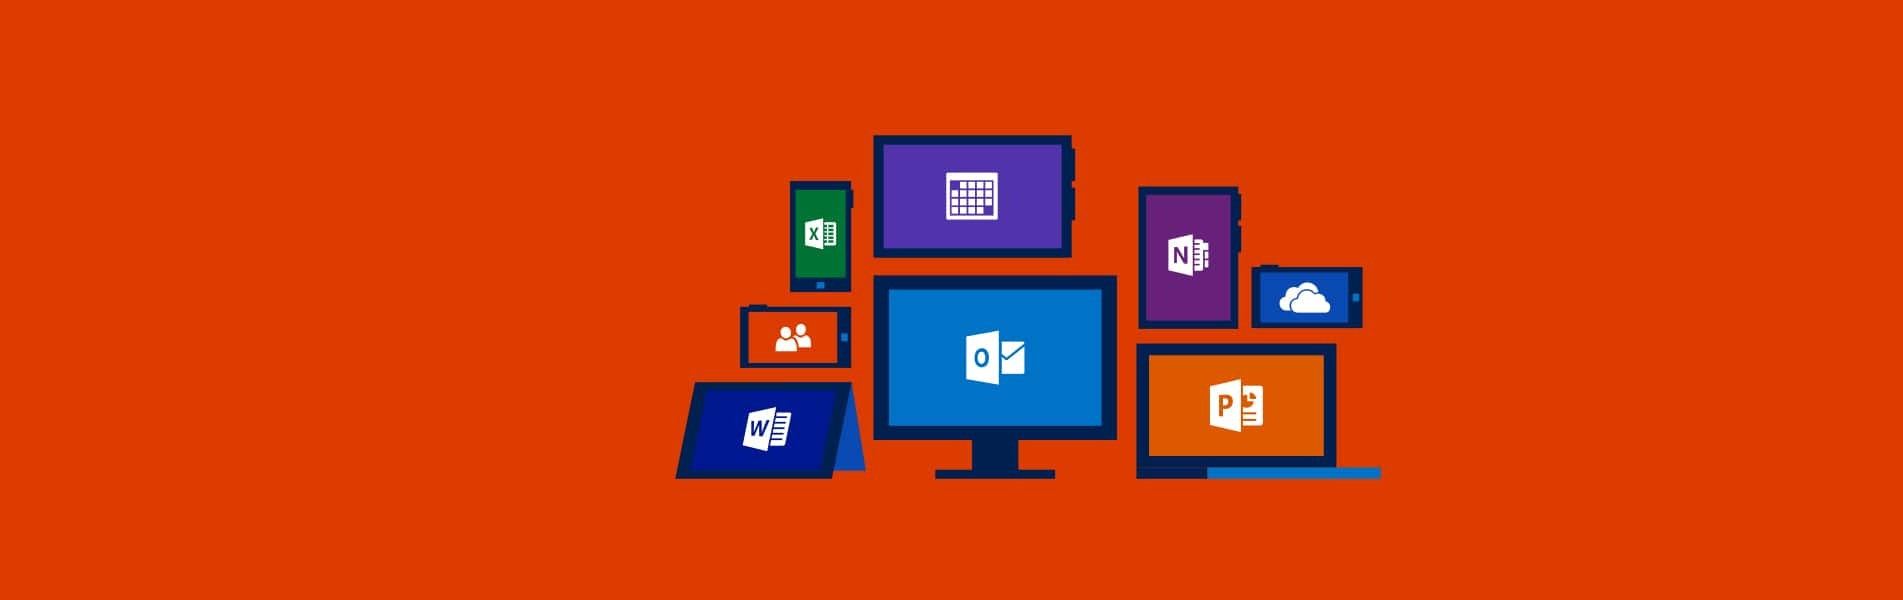 Why Office 365 Rocks | Microsoft Office 365 | Cloud-Based